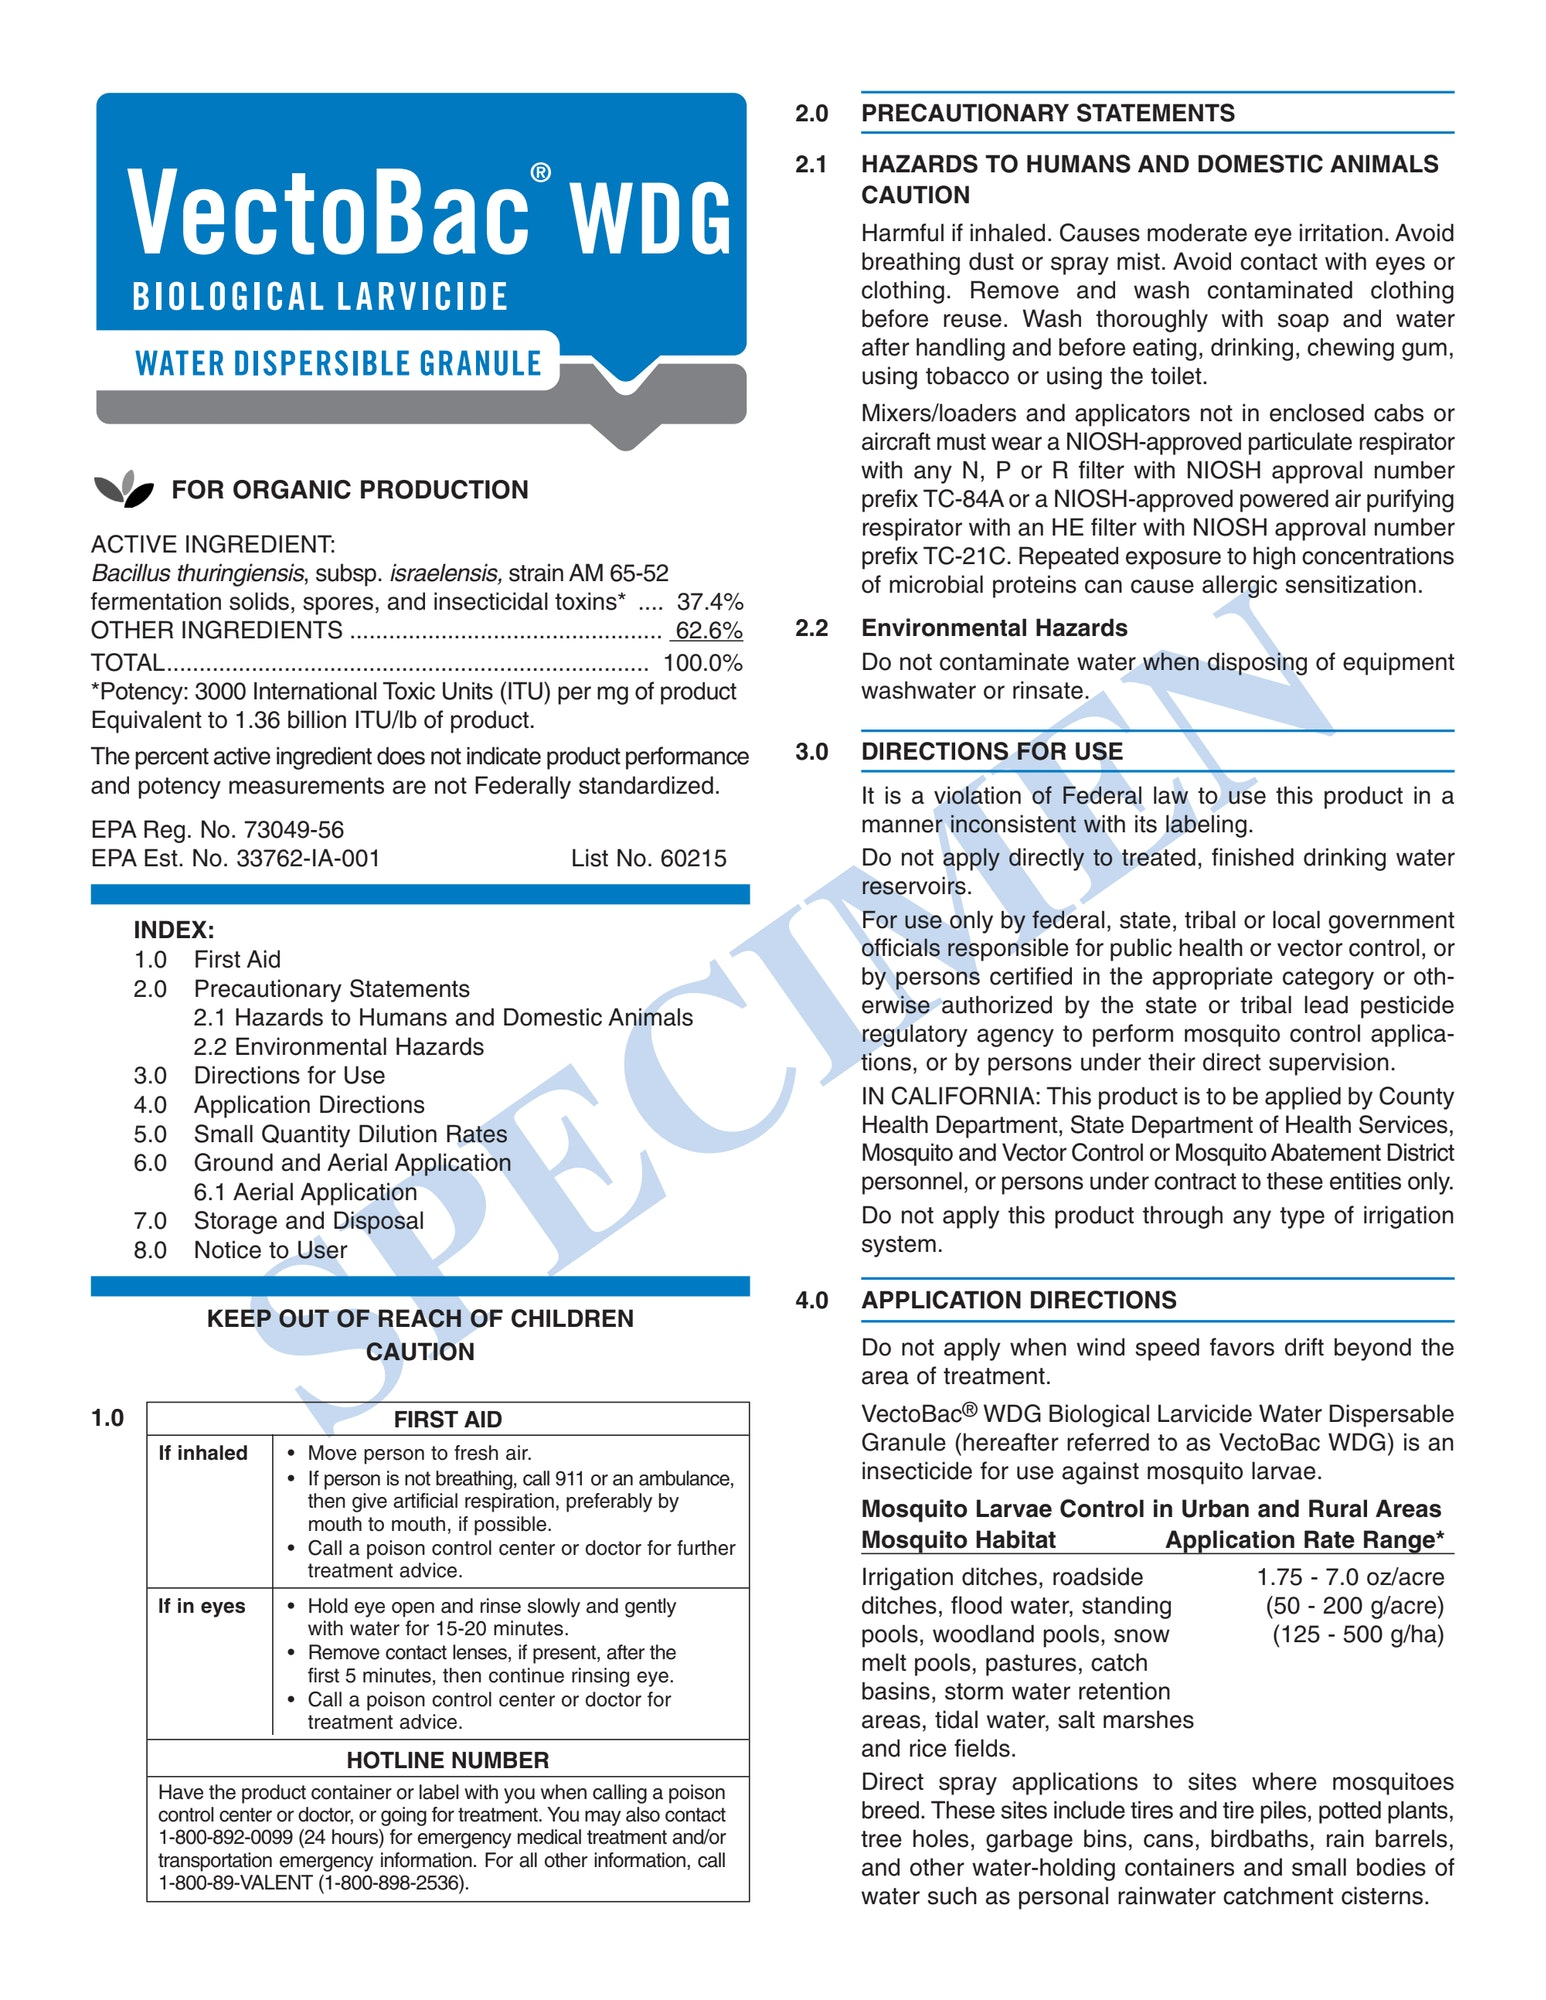 VectoBac WDG Label